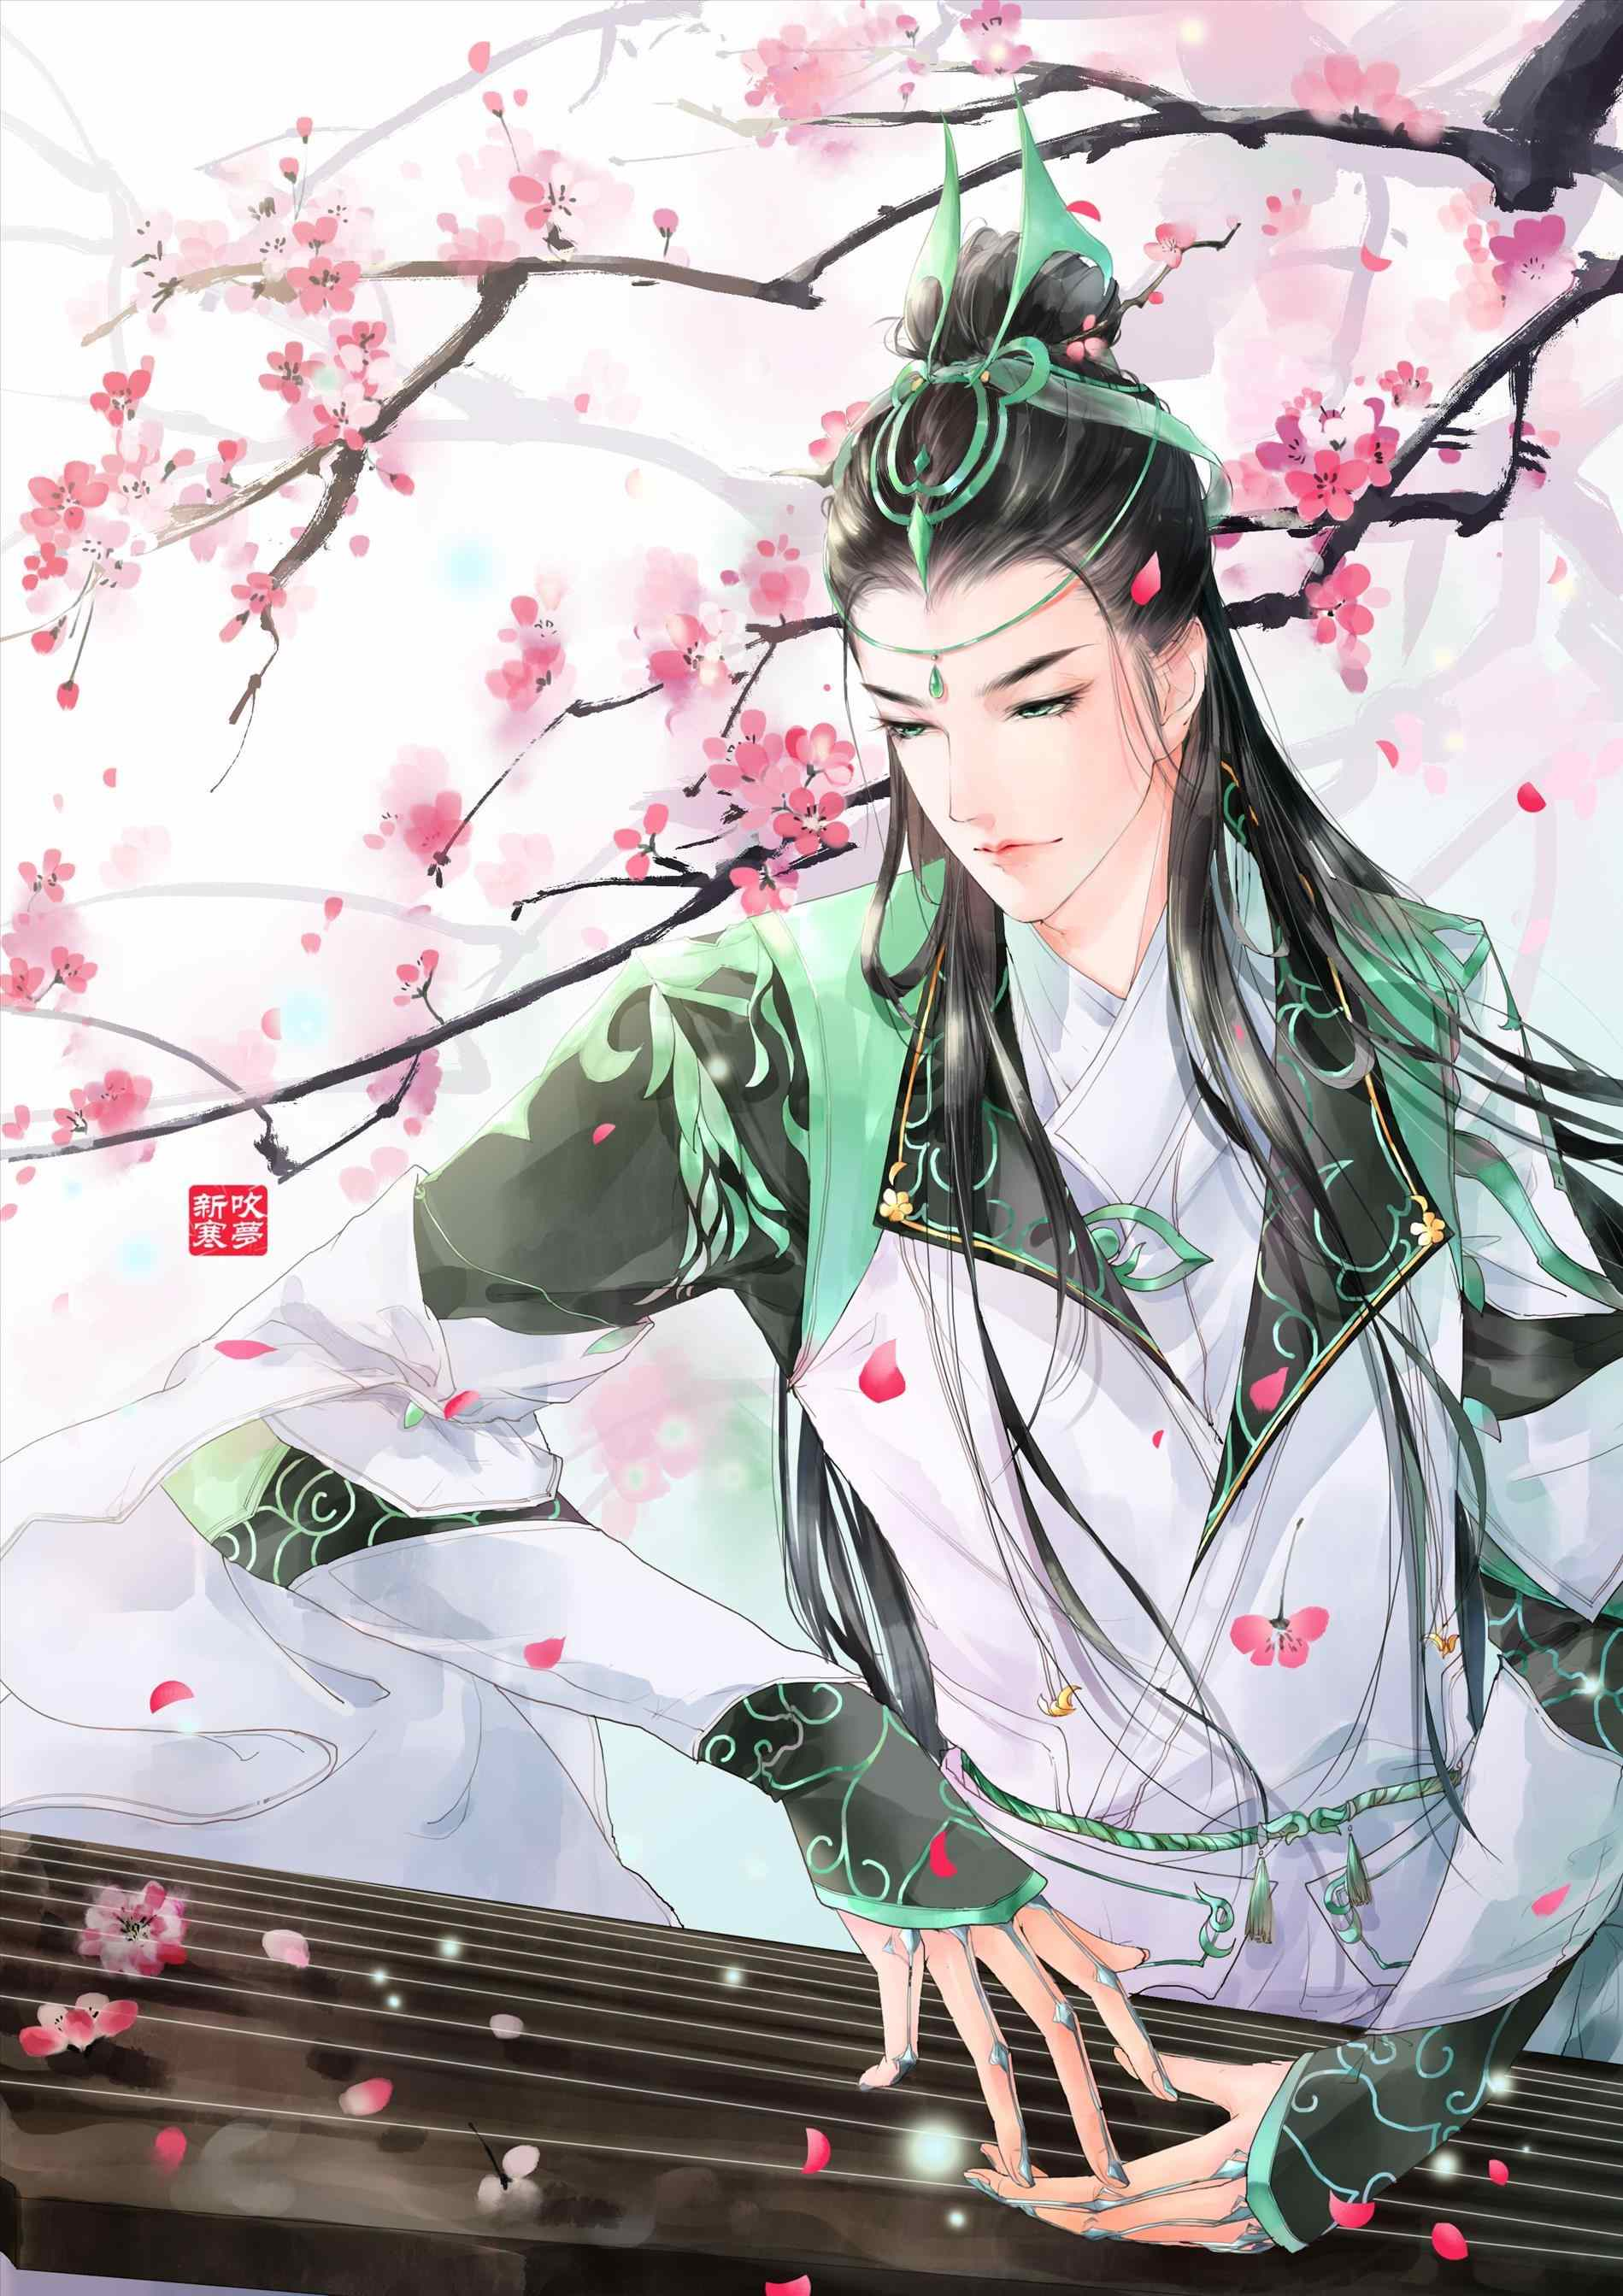 Chinese Anime Boy Wallpapers - Wallpaper Cave